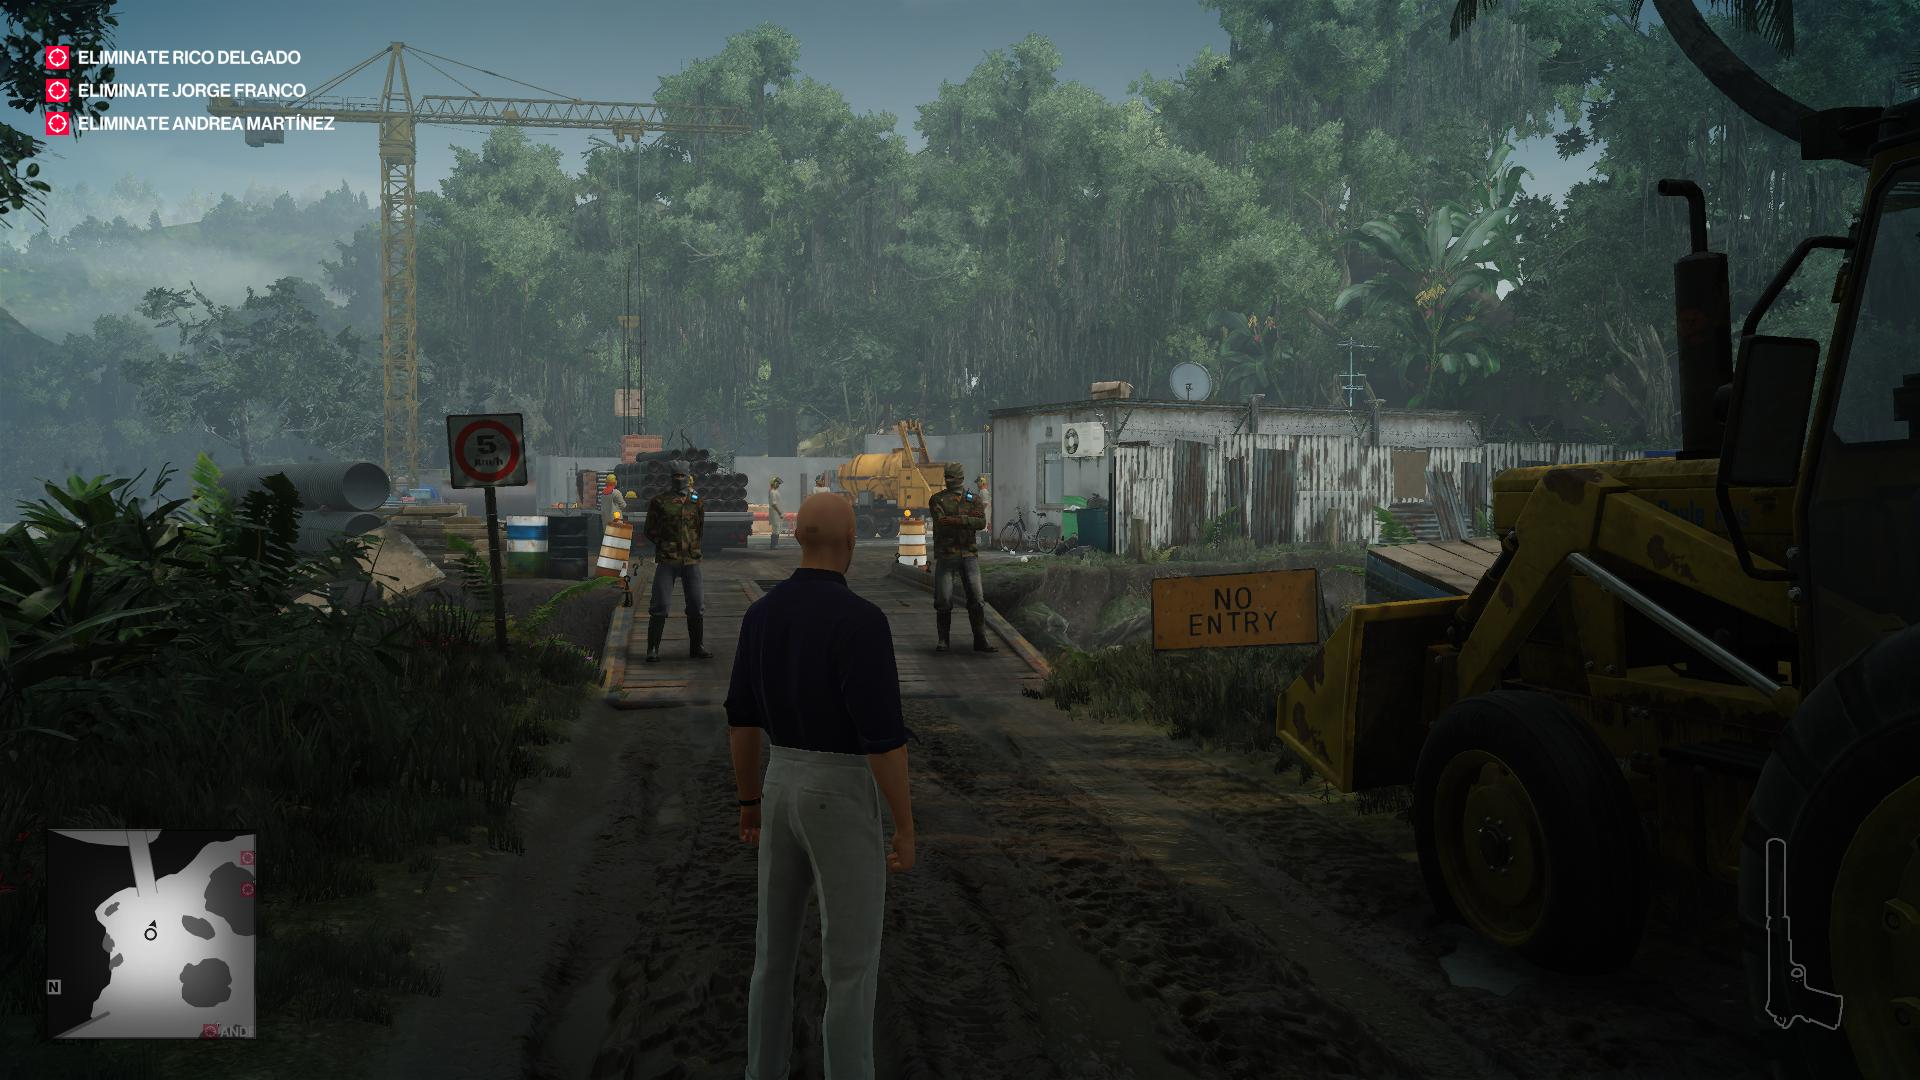 Agent 47 in casual wear, standing next to a bulldozer on the other side of a bridge. Two armed goons are standing guard.